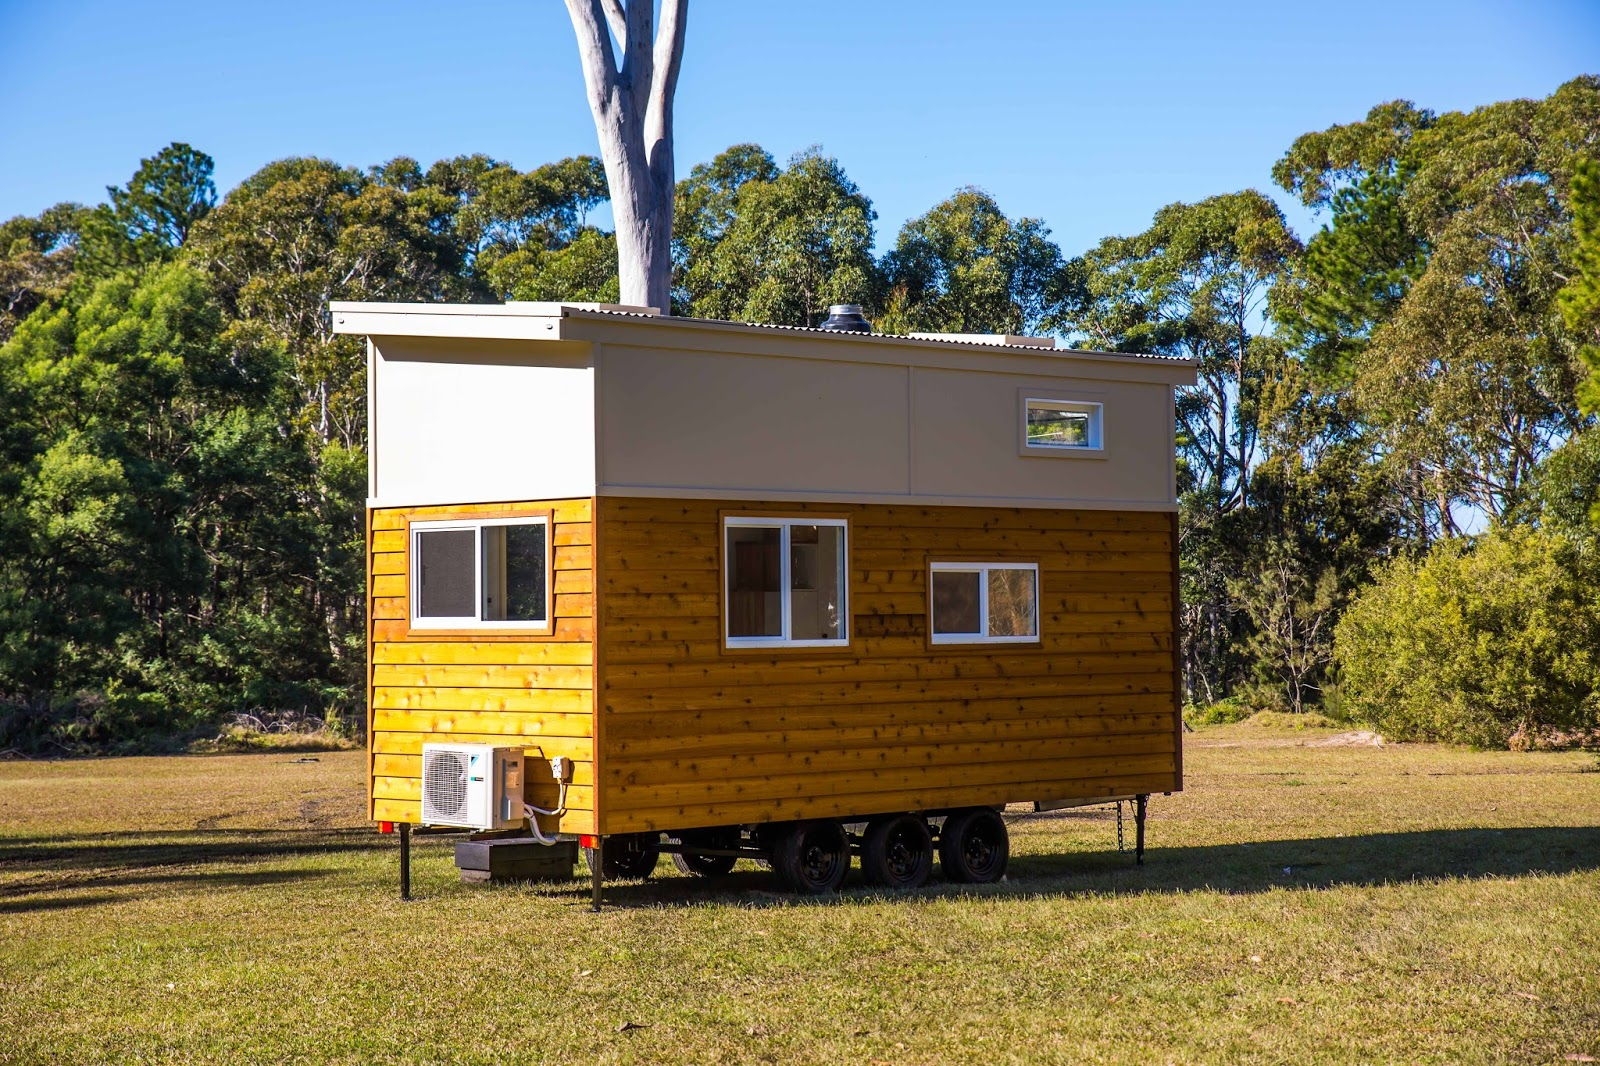 Tiny house town graduate series 6000dls by designer eco homes for Eco house builders